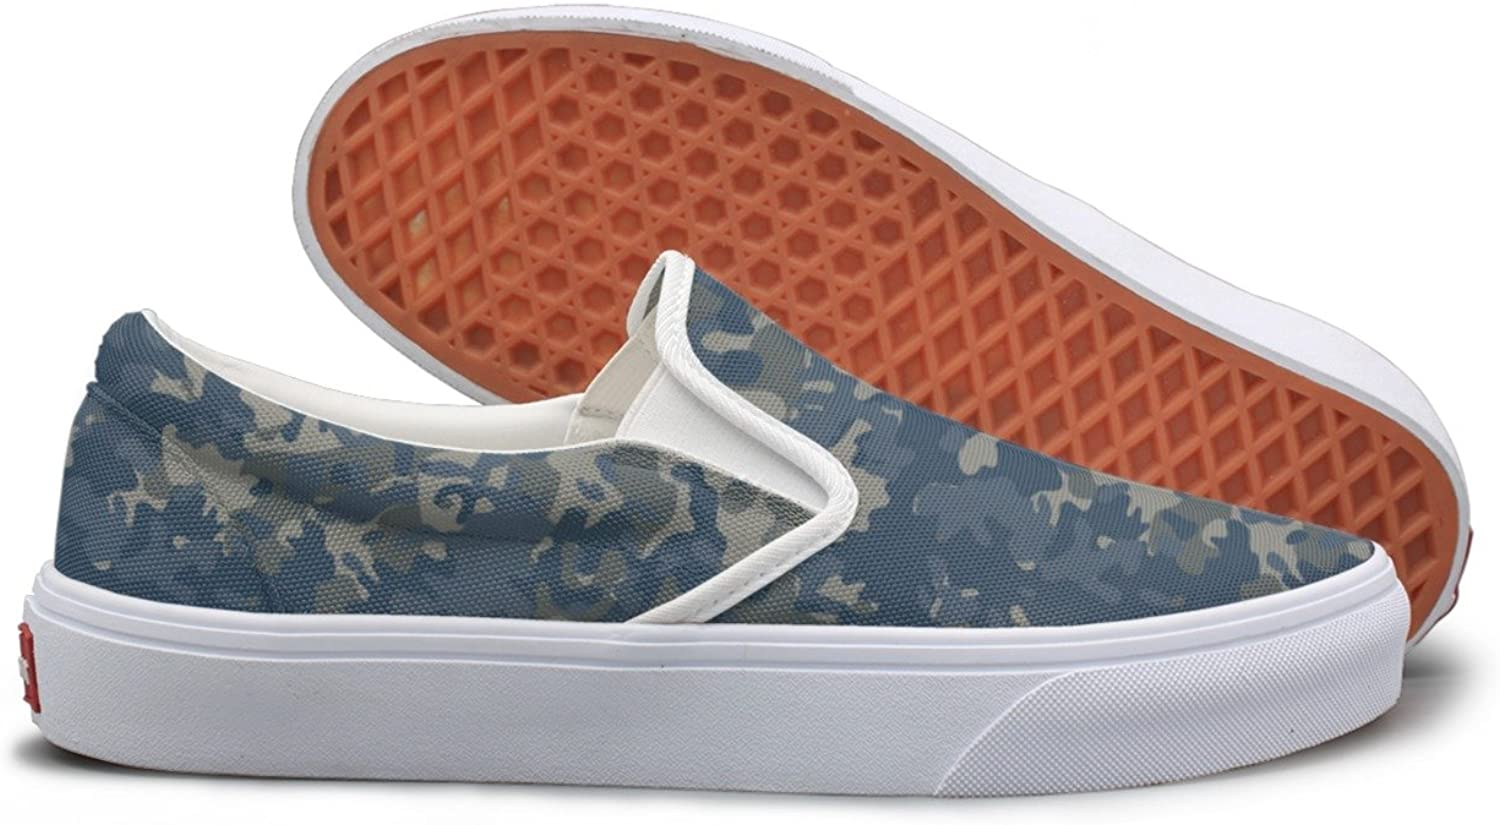 SEERTED bluee Camouflage Top Sneakers for Women